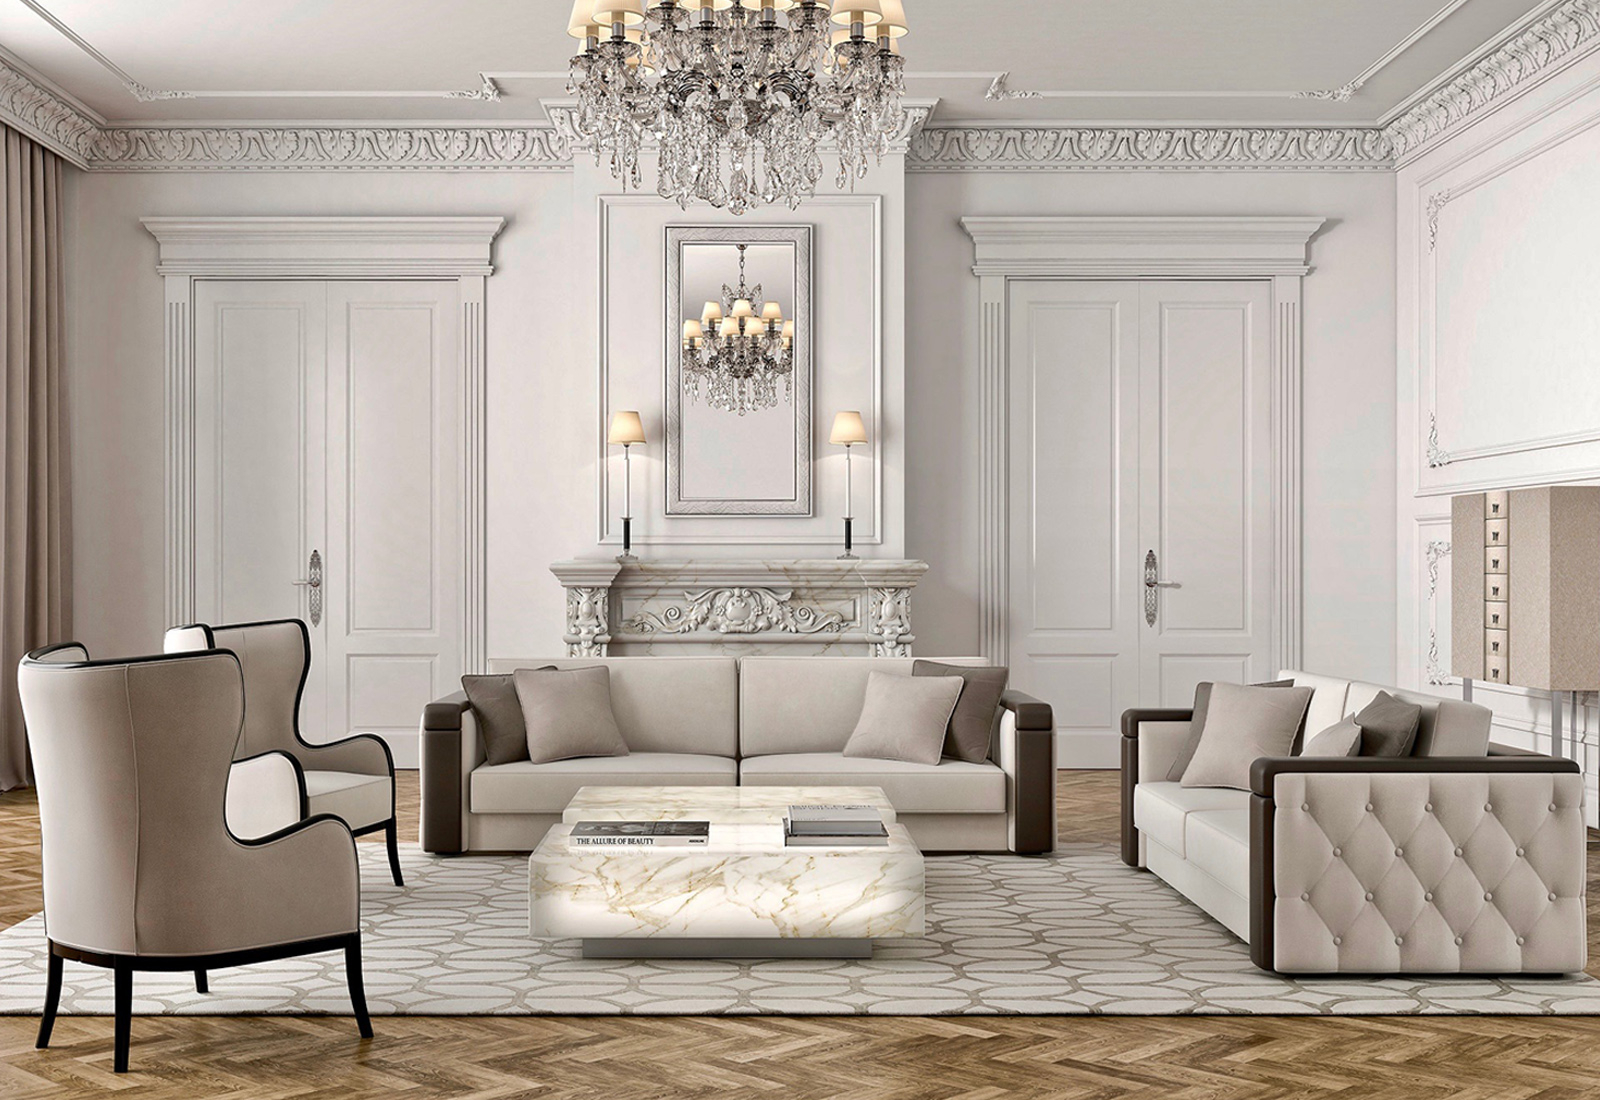 Luxury Living Room Furniture Sets inside Luxurious Living Room Sets